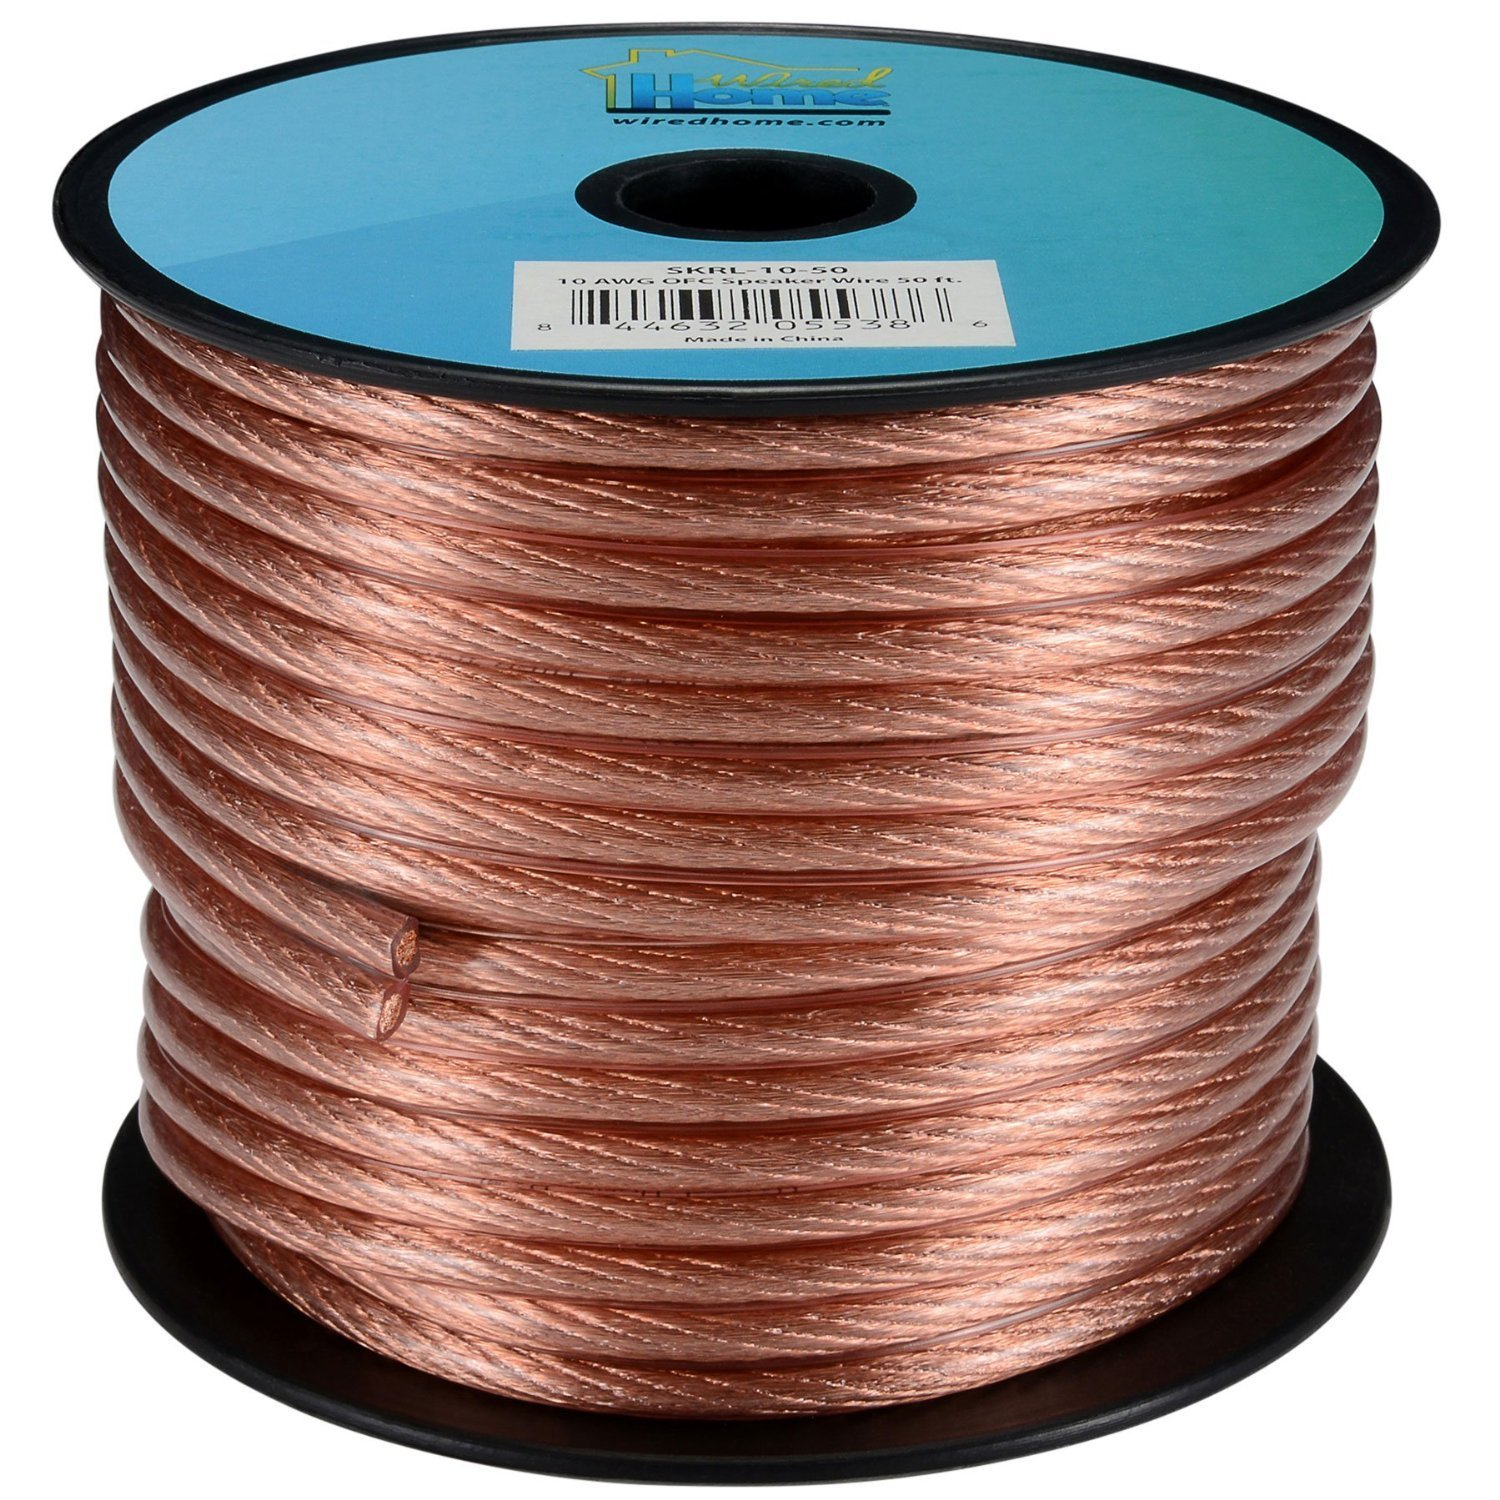 Skrl 10 50 Awg Ofc Speaker Wire Ft Ship From Usabrand Home Wiring Wired